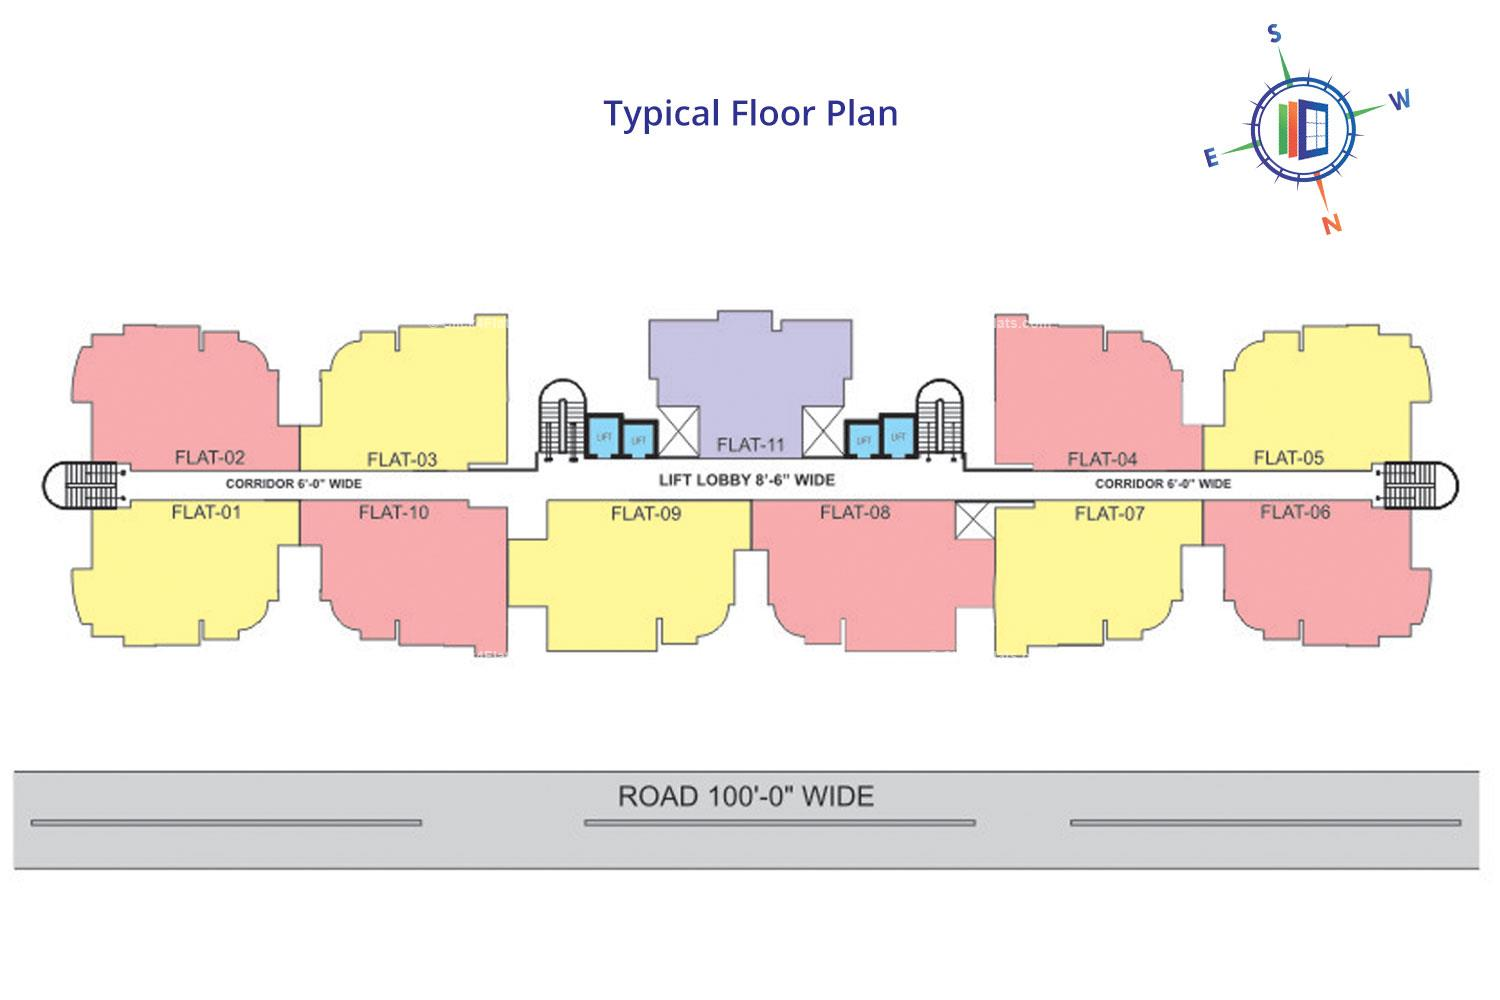 Sunny Enclave 1 Typical Floor Plan